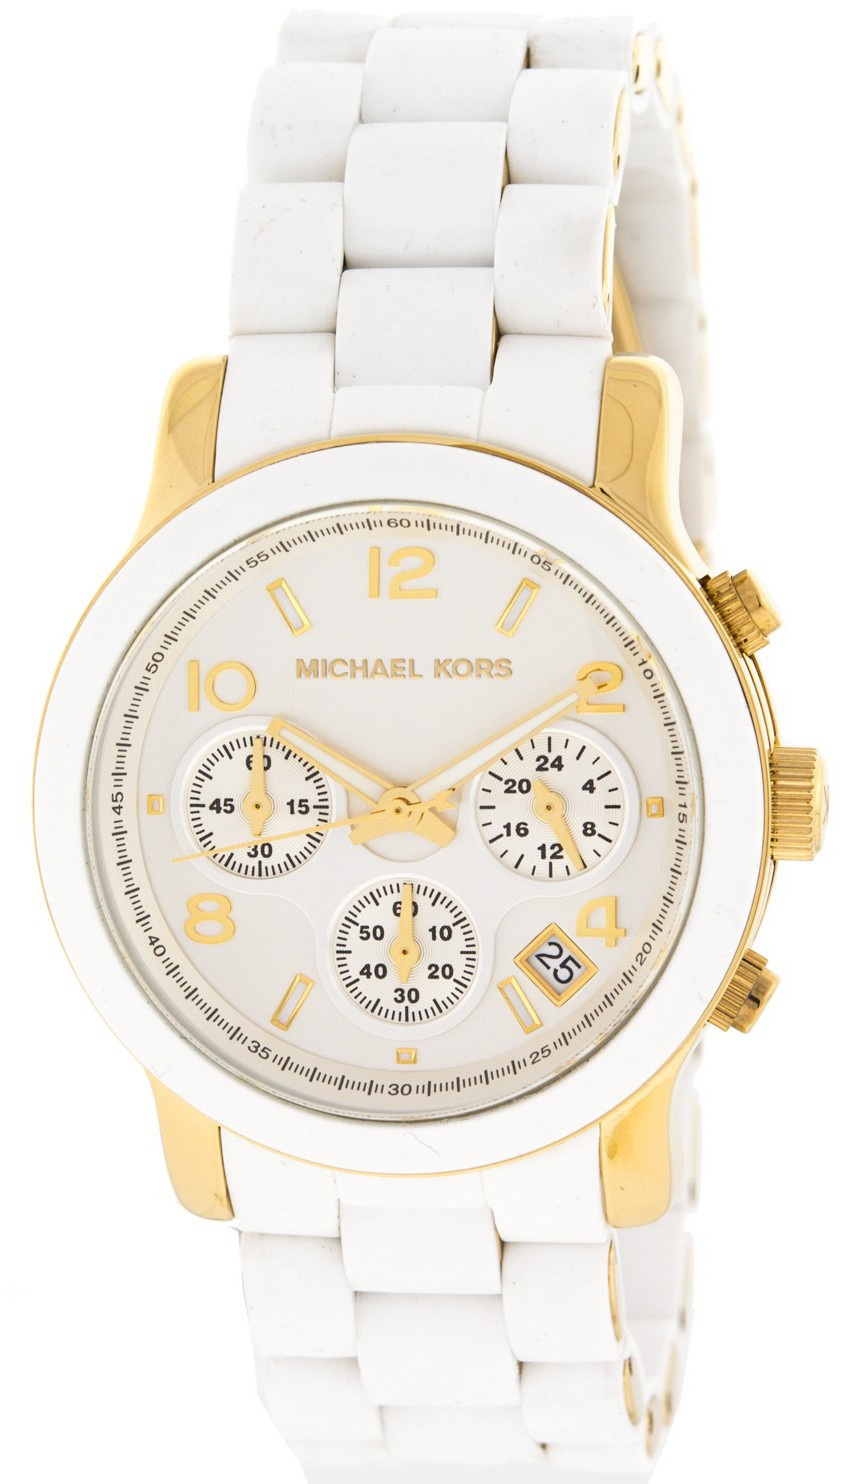 aa0d787027b Michael Kors MK5145 Ladies Two Tone Stainless Steel Quartz Runway  Chronograph White and Yellow Goldtone Dial Watch